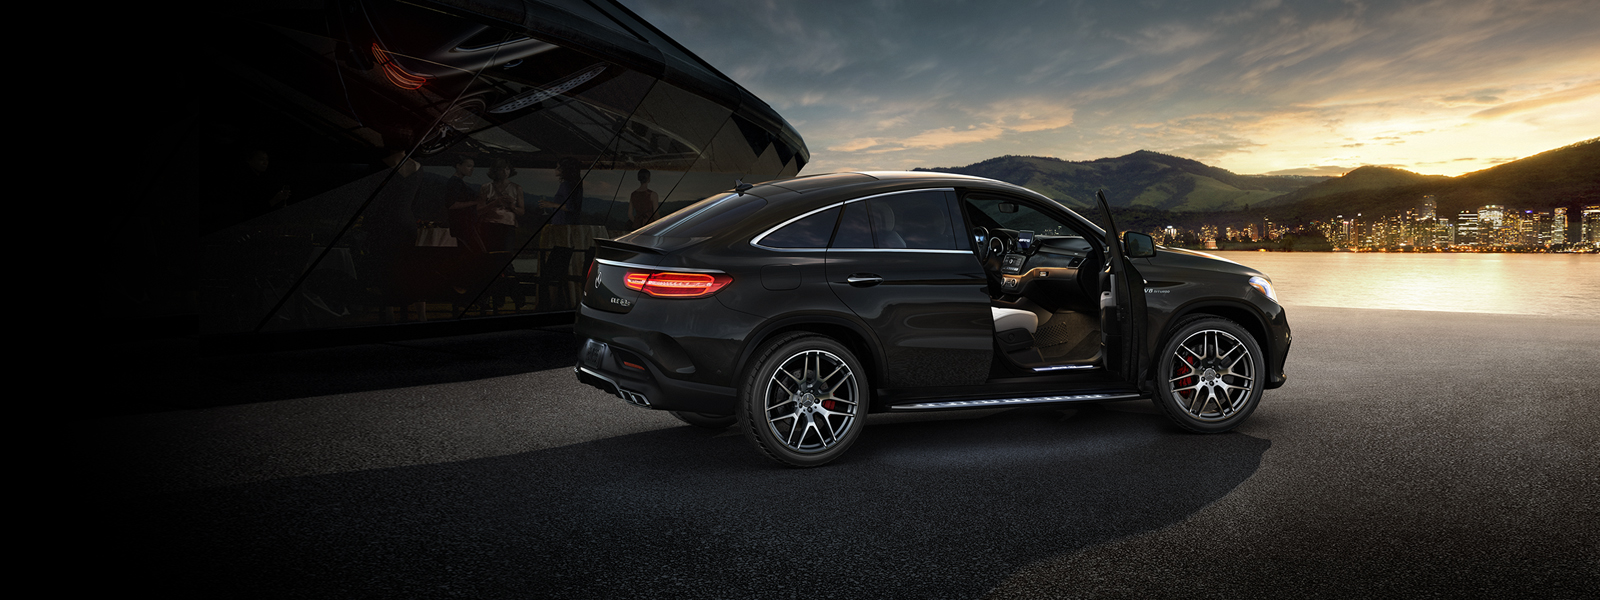 https://assets.mbusa.com/vcm/MB/DigitalAssets/Vehicles/ClassLanding/2018/GLE/Coupe/AMG/hero/2018-GLE-COUPE-AMG-CLASS-HERO-CH1-D.jpg